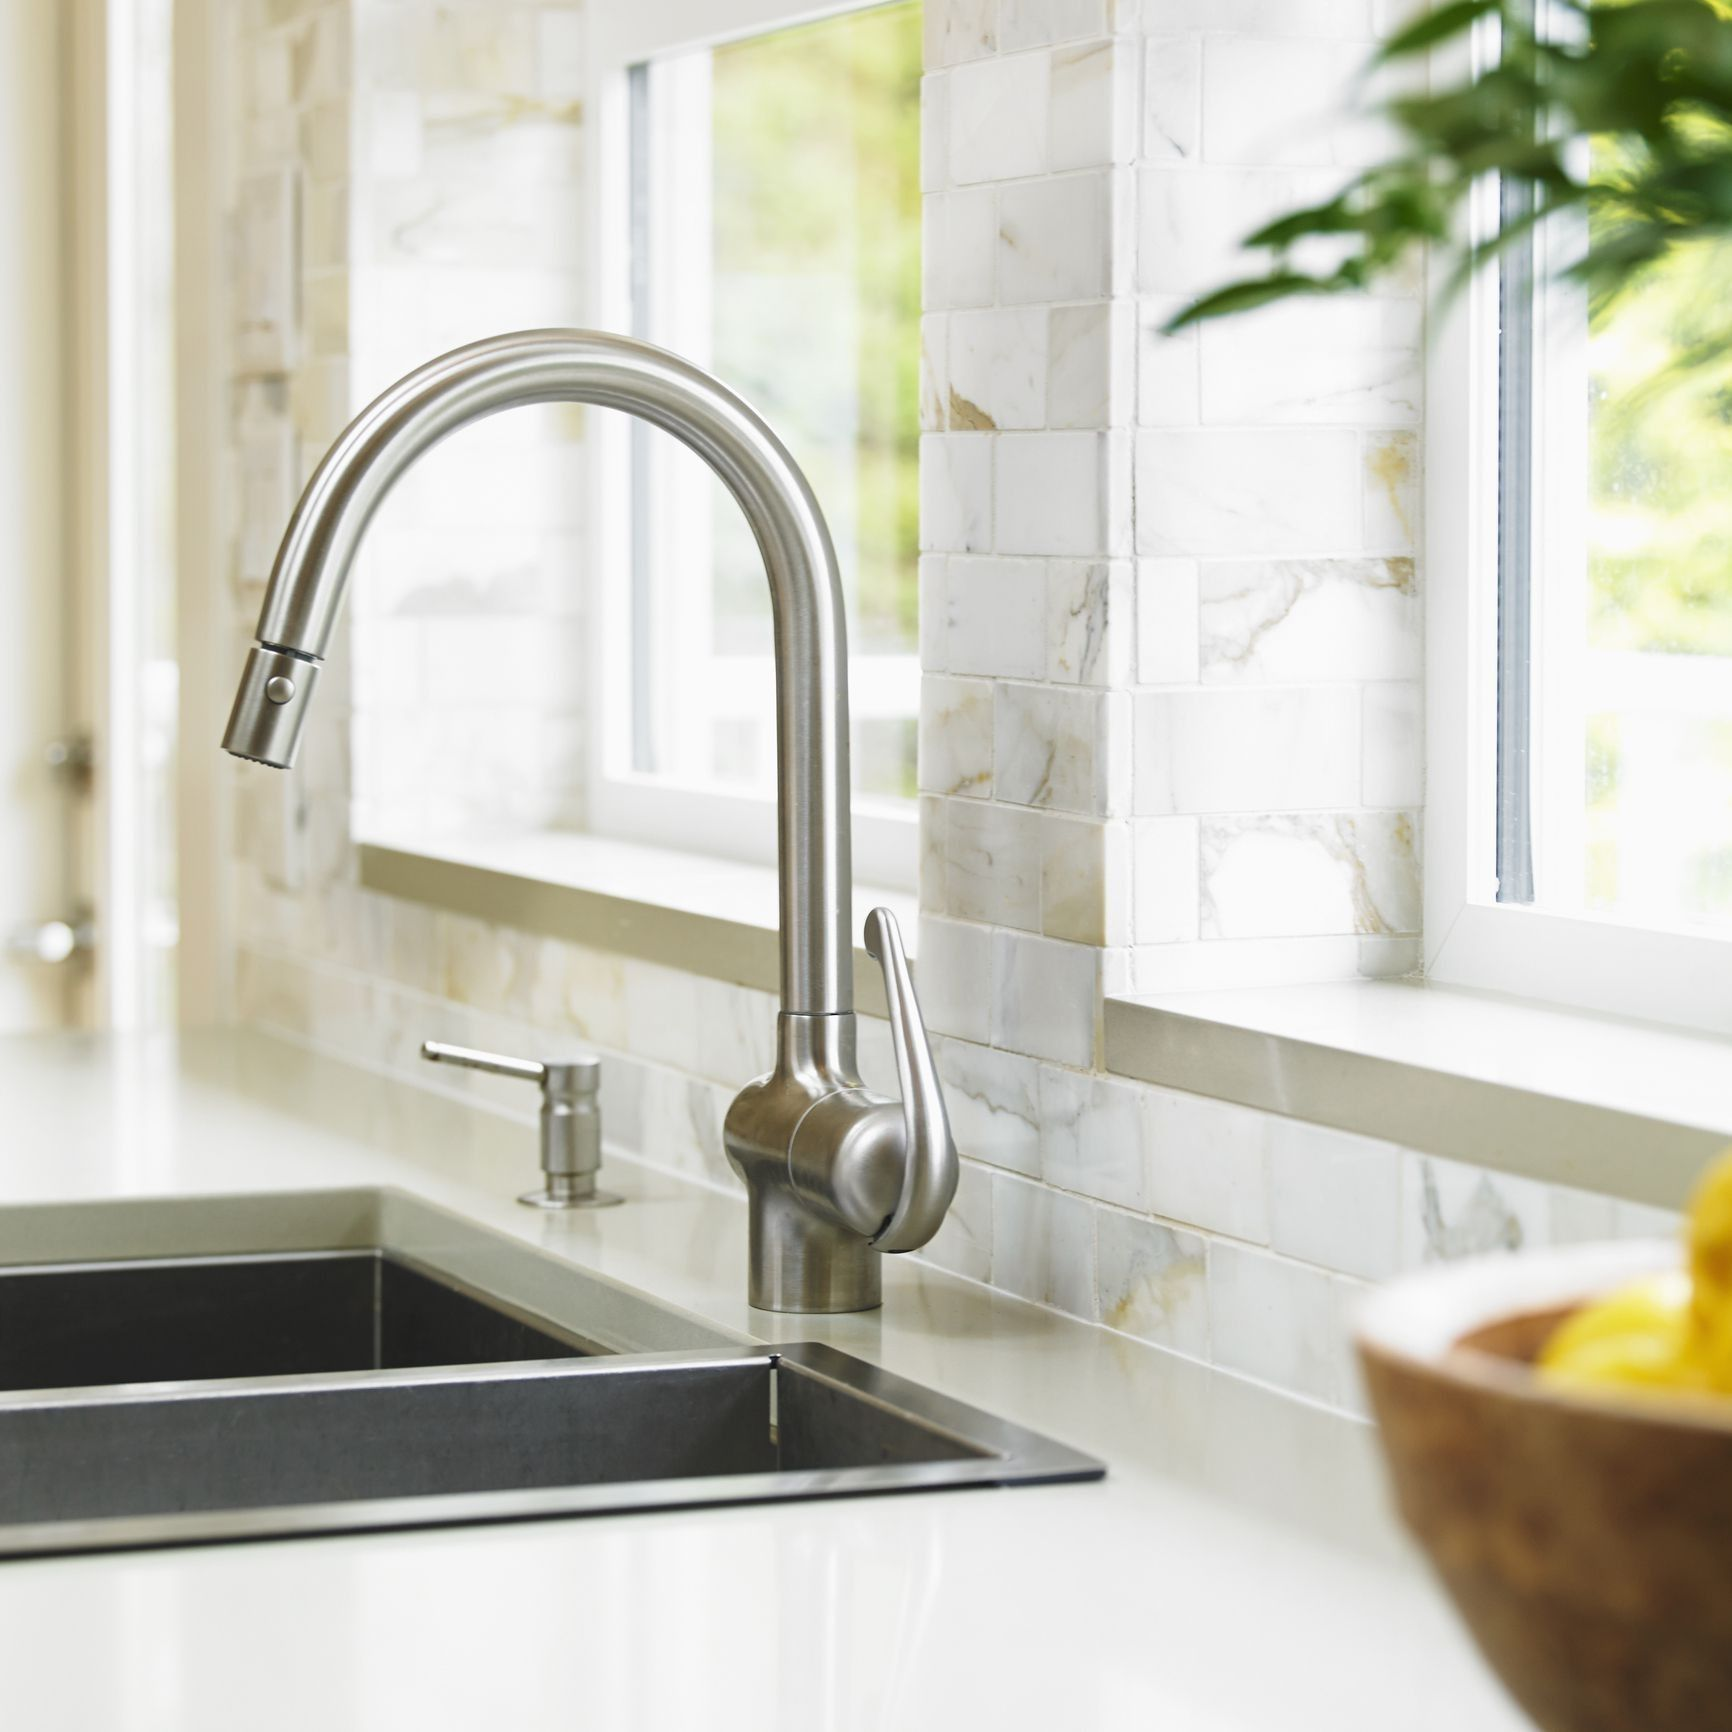 Top Of The Line Kitchen Faucets Hd Wallpaper How To Install A Moen